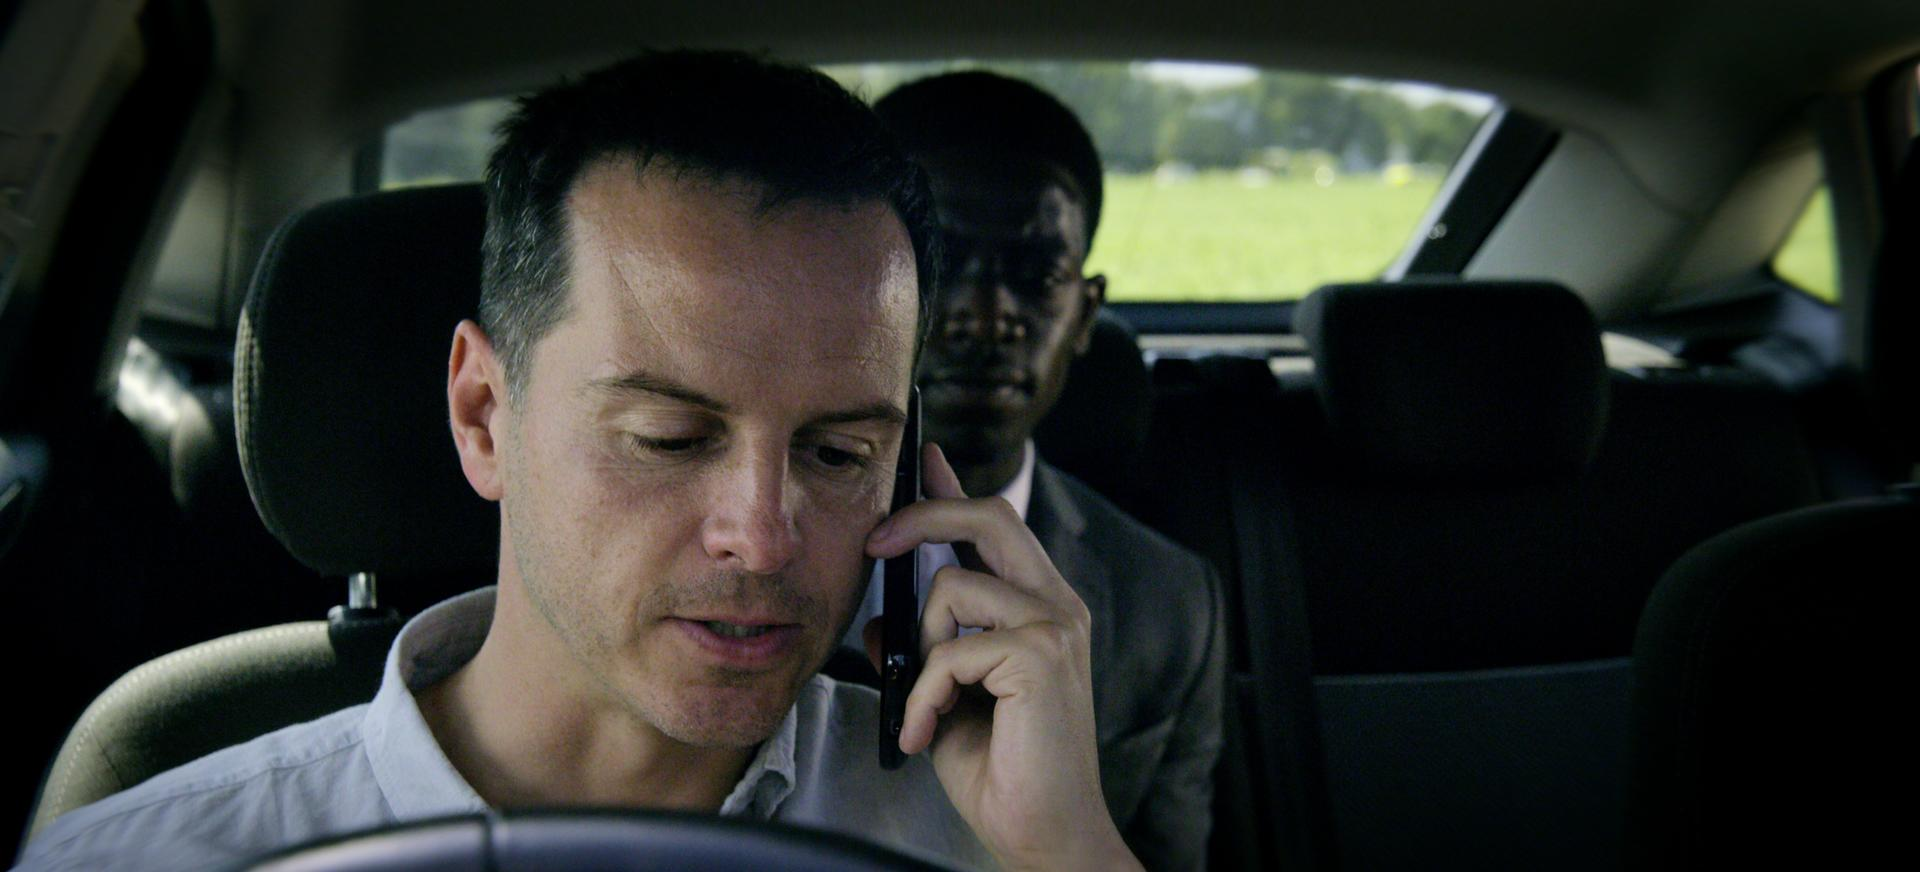 Black Mirror season 5 trailers released and Andrew Scott's episode pays homage to the Prime Minister pig incident